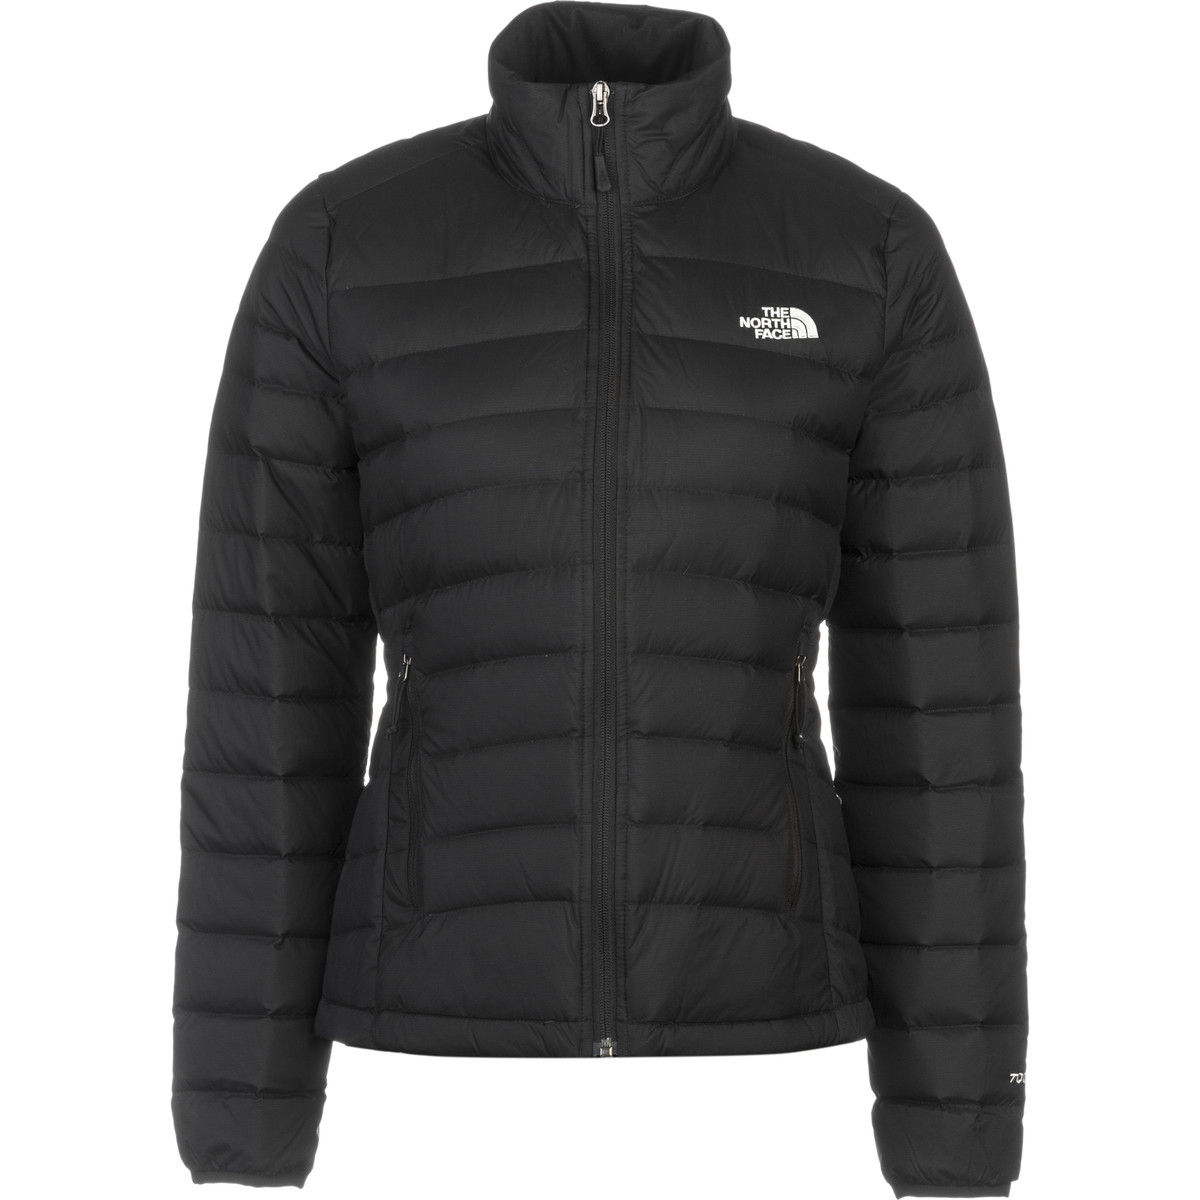 The North Face Mistassini Down Jacket